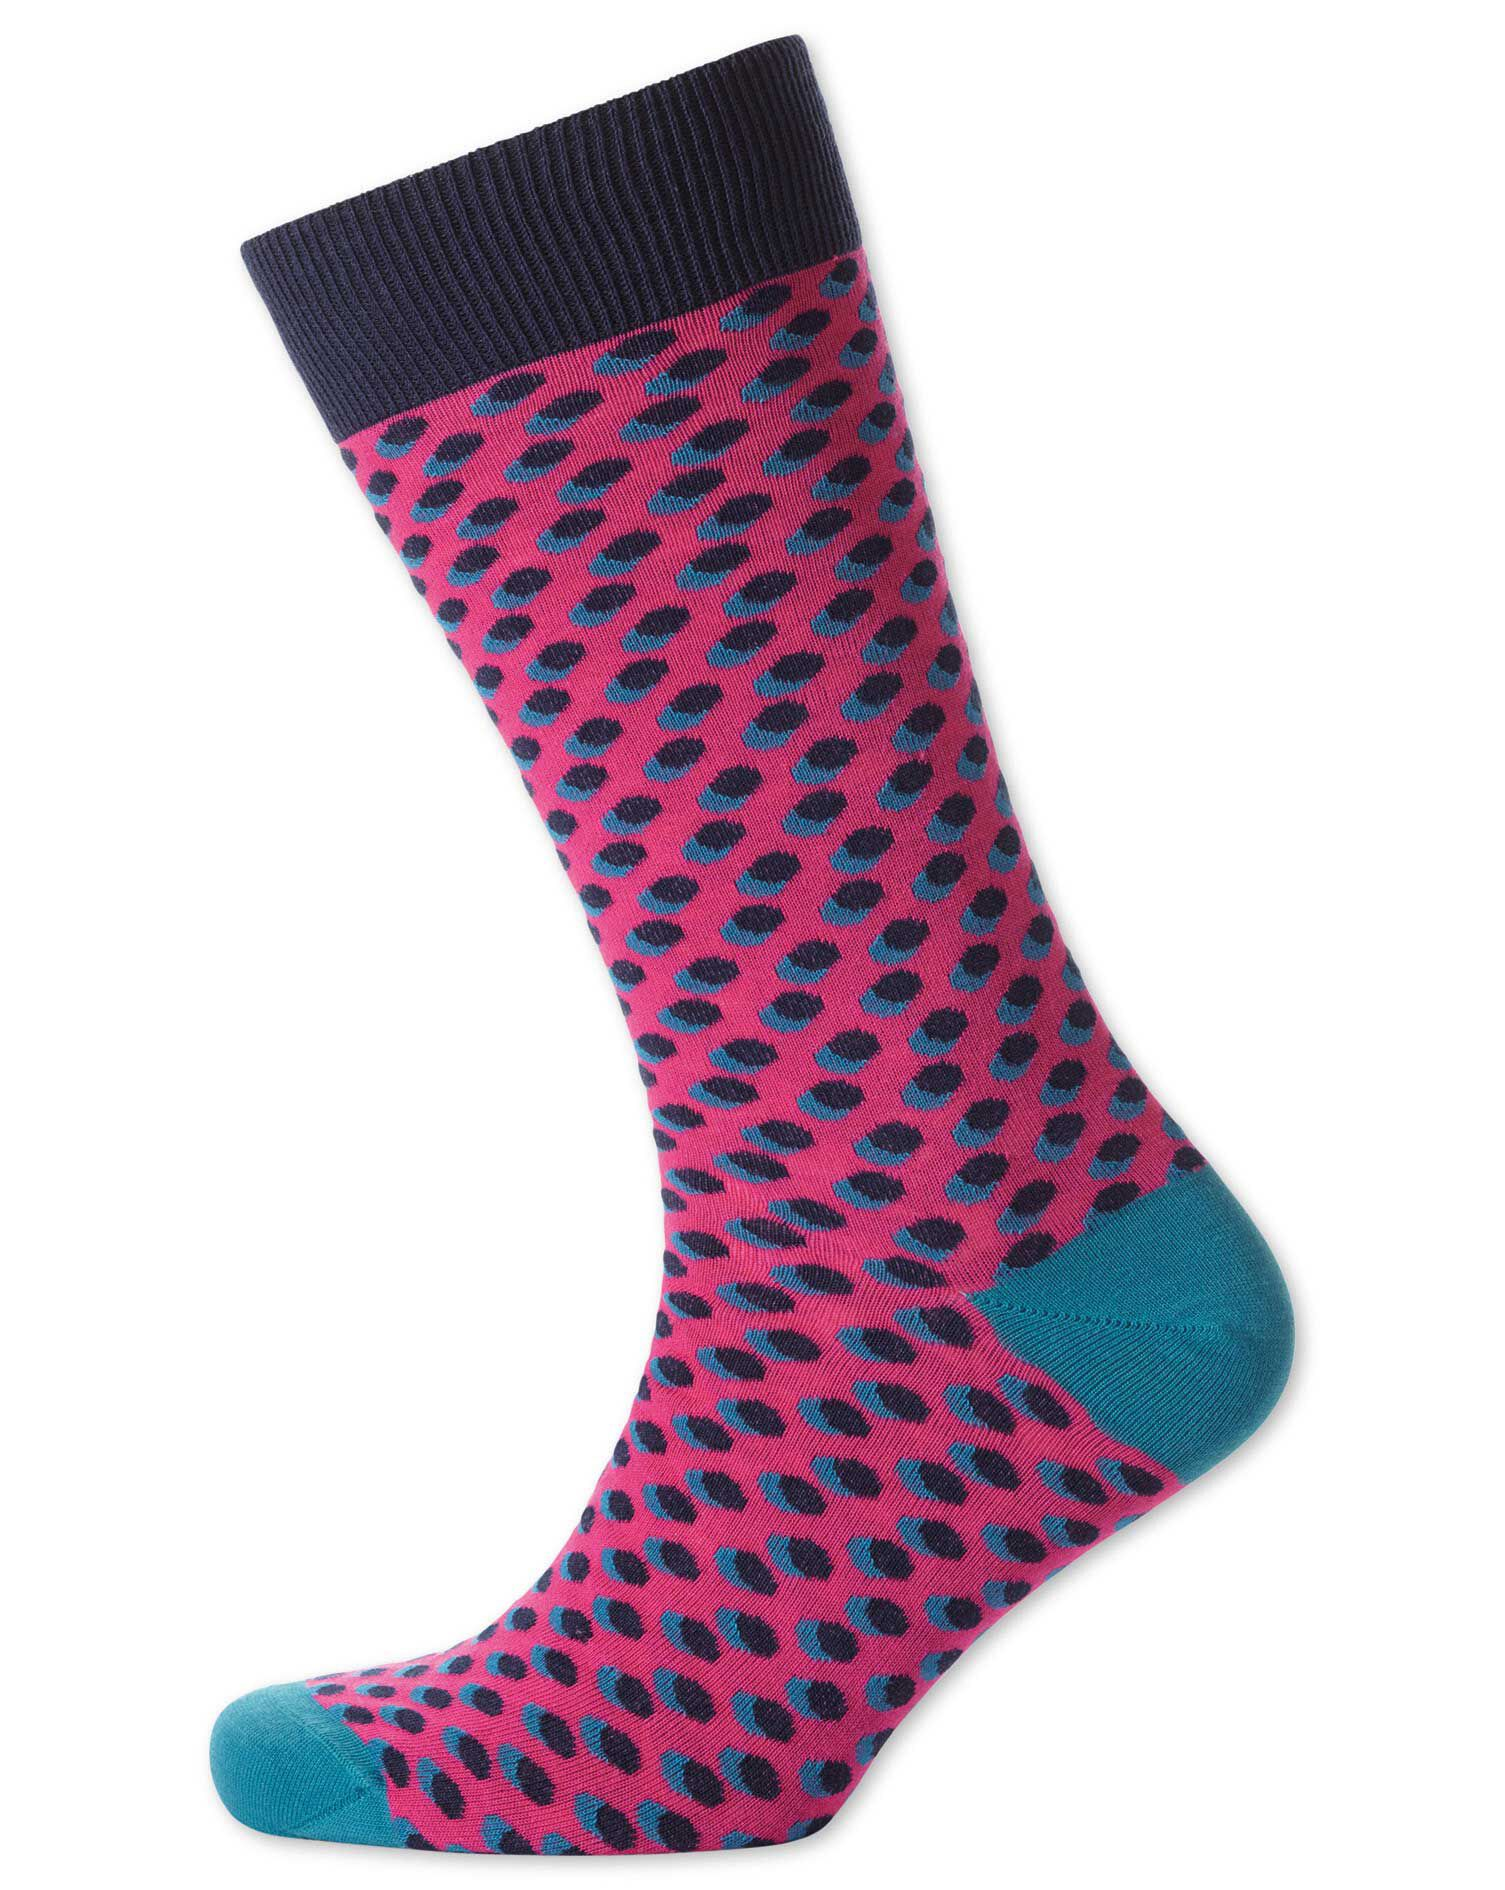 Pink Shadow Spot Socks Size Large by Charles Tyrwhitt